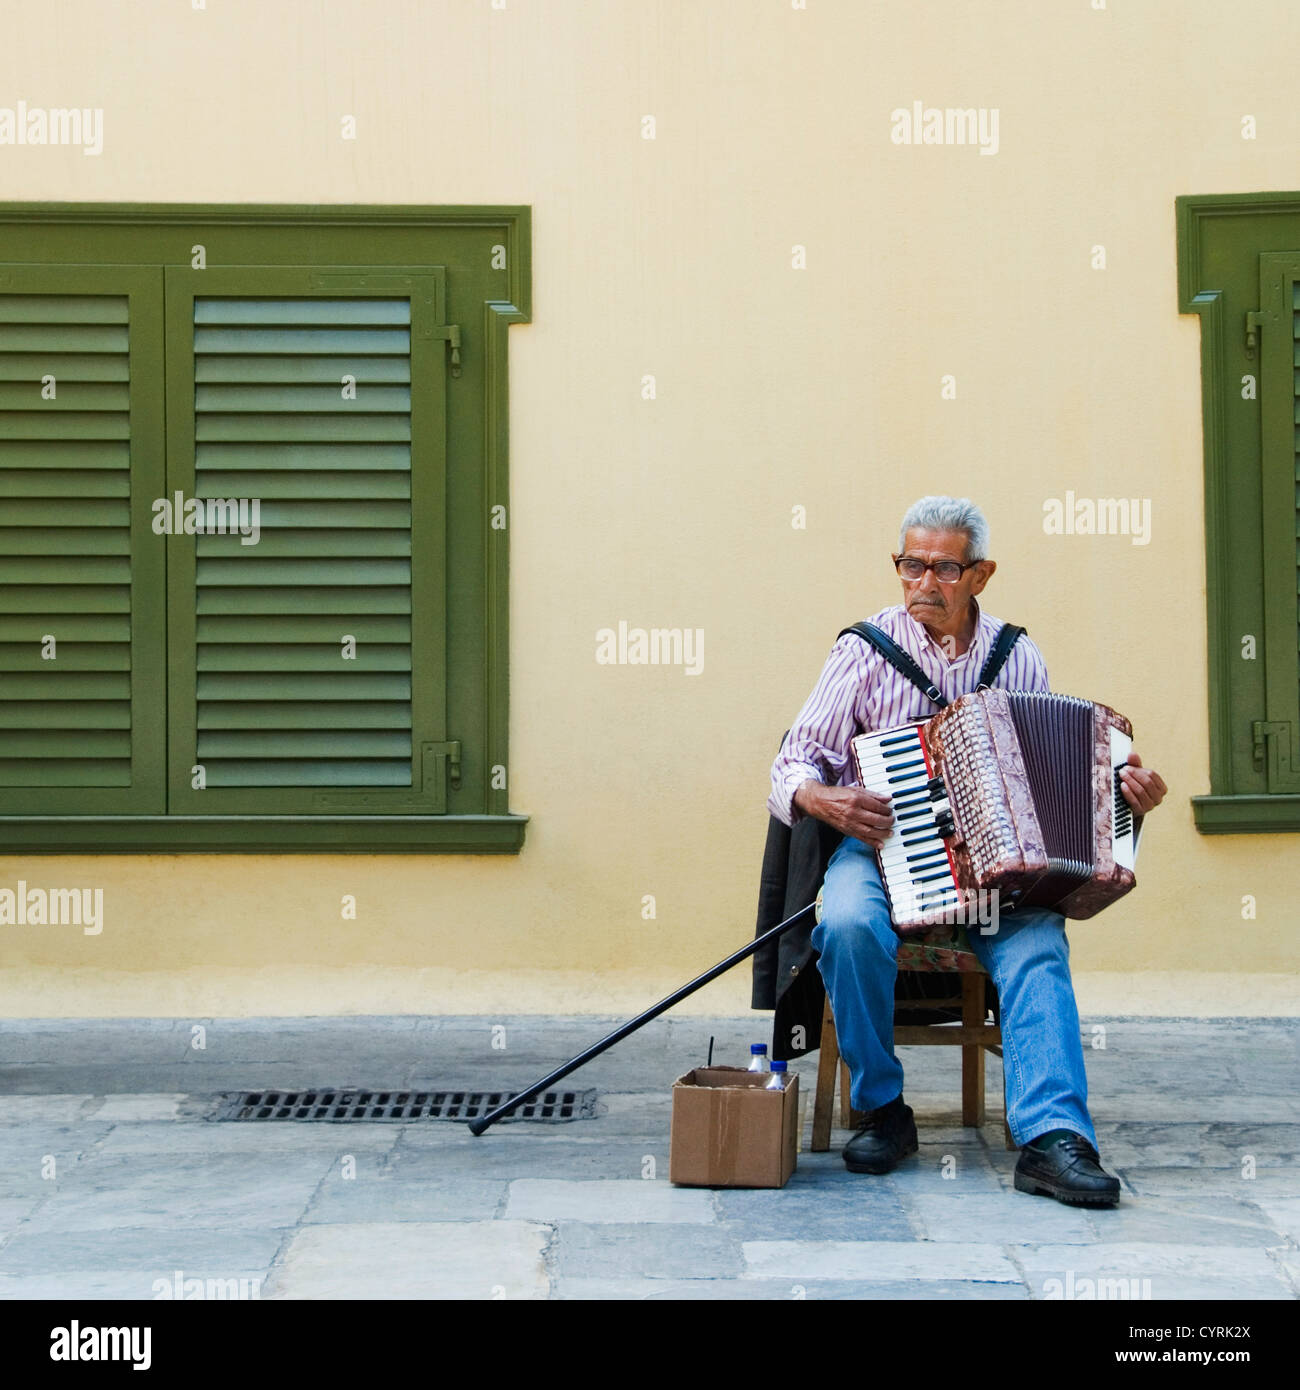 Man playing an accordion, Athens, Greece - Stock Image